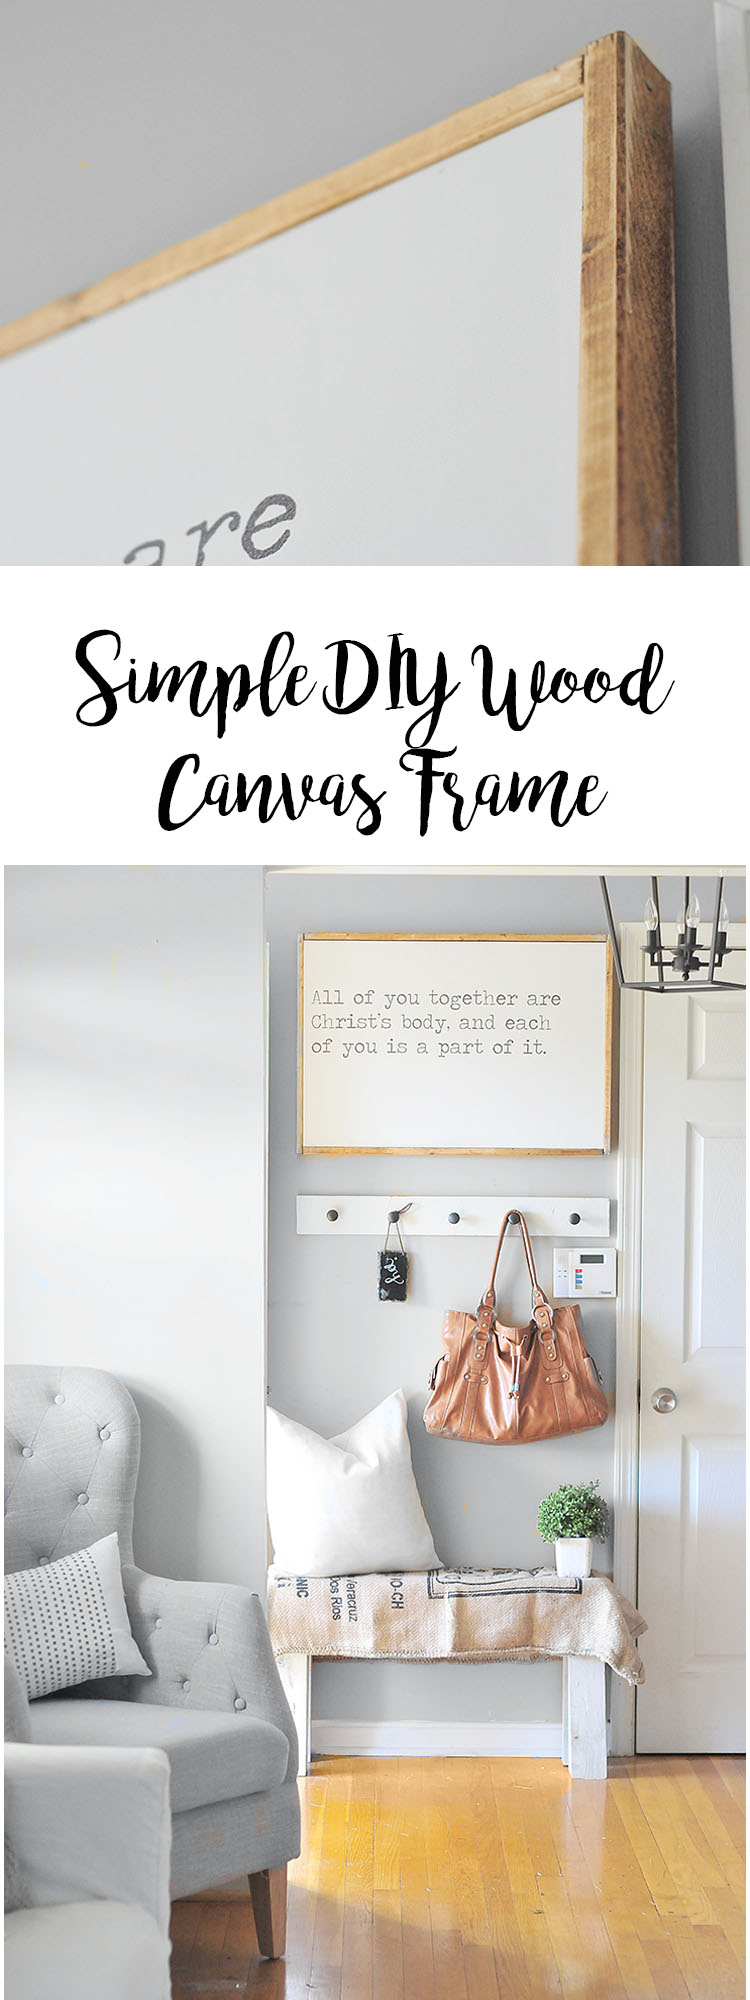 DIY Wood Canvas Frame | THE JUNQ DRAWER